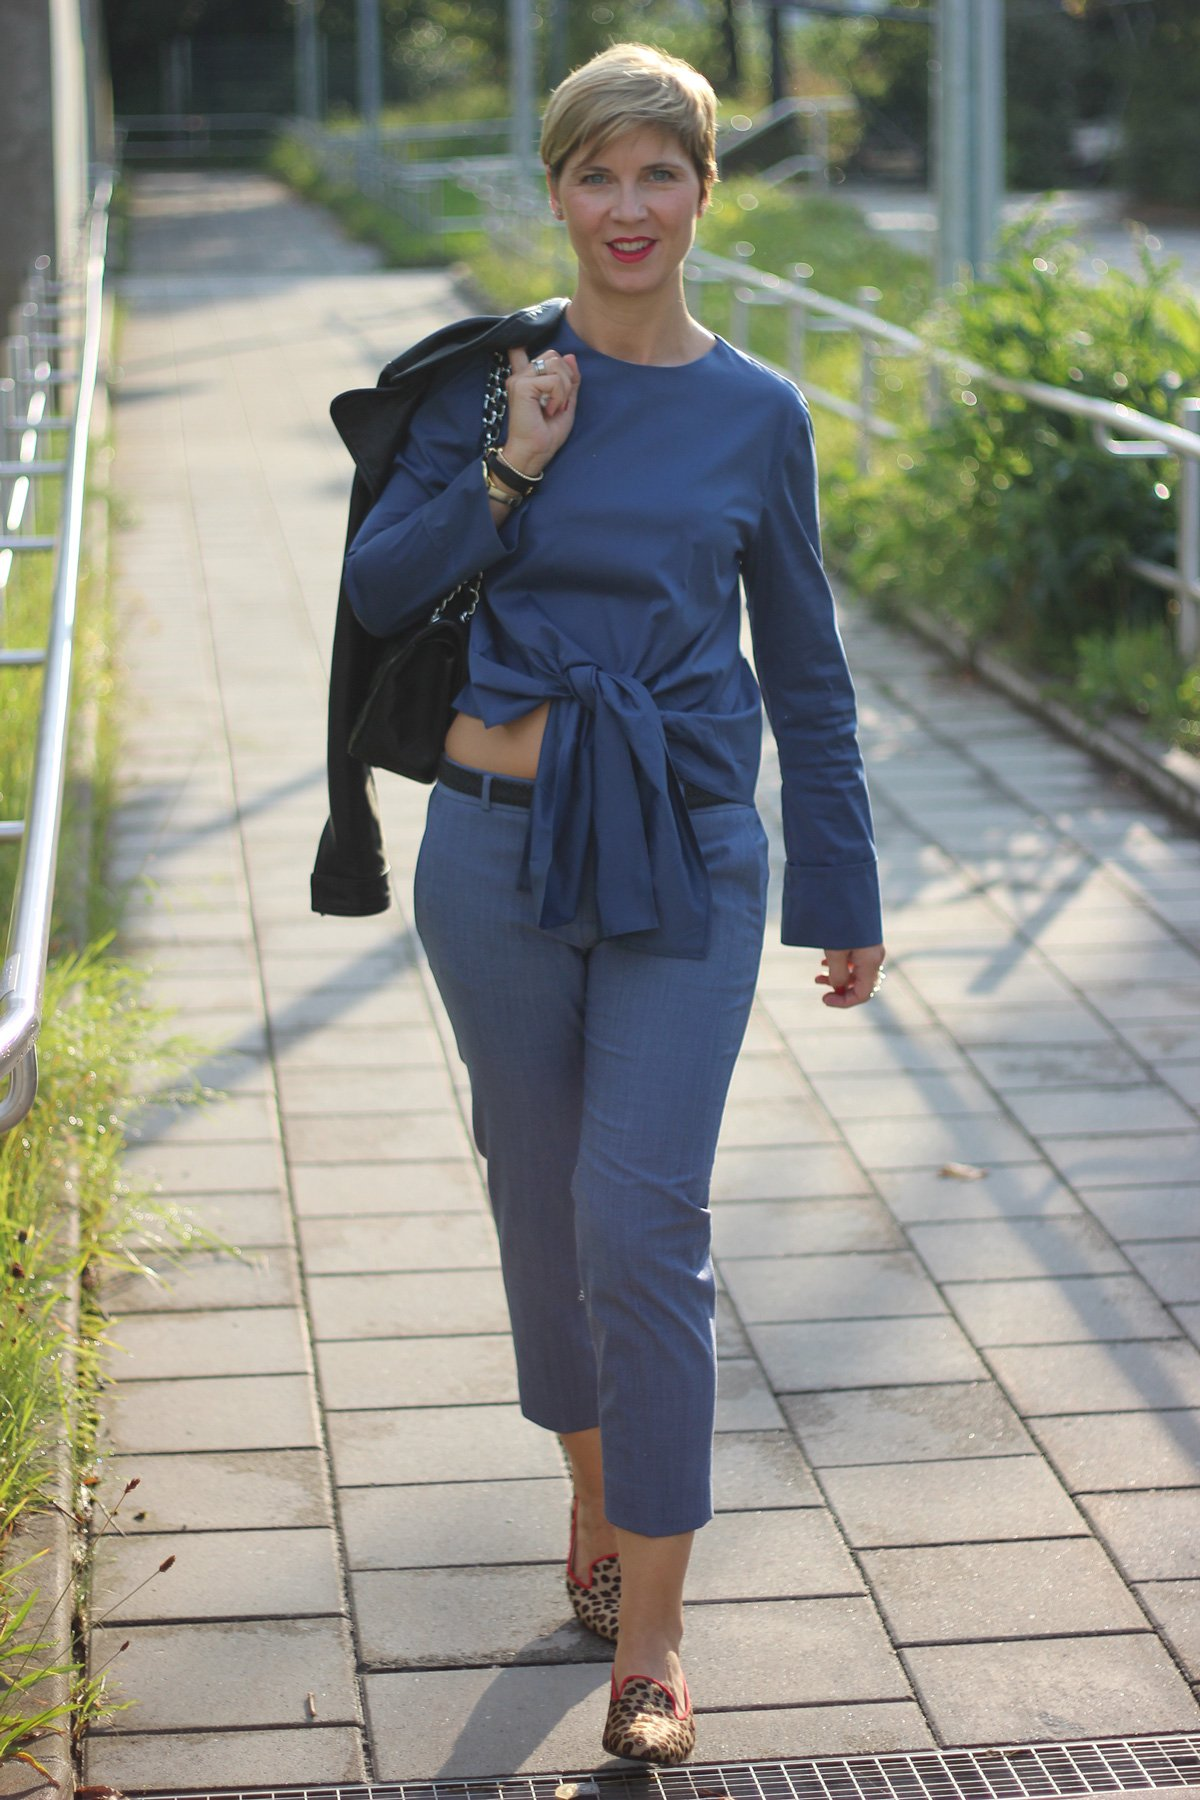 Boulangerie Bleue, Conny Doll, Cafe Reitschule Muenchen, Getraenk, franzoesische riviera, event, blau, outfit, fashionblog